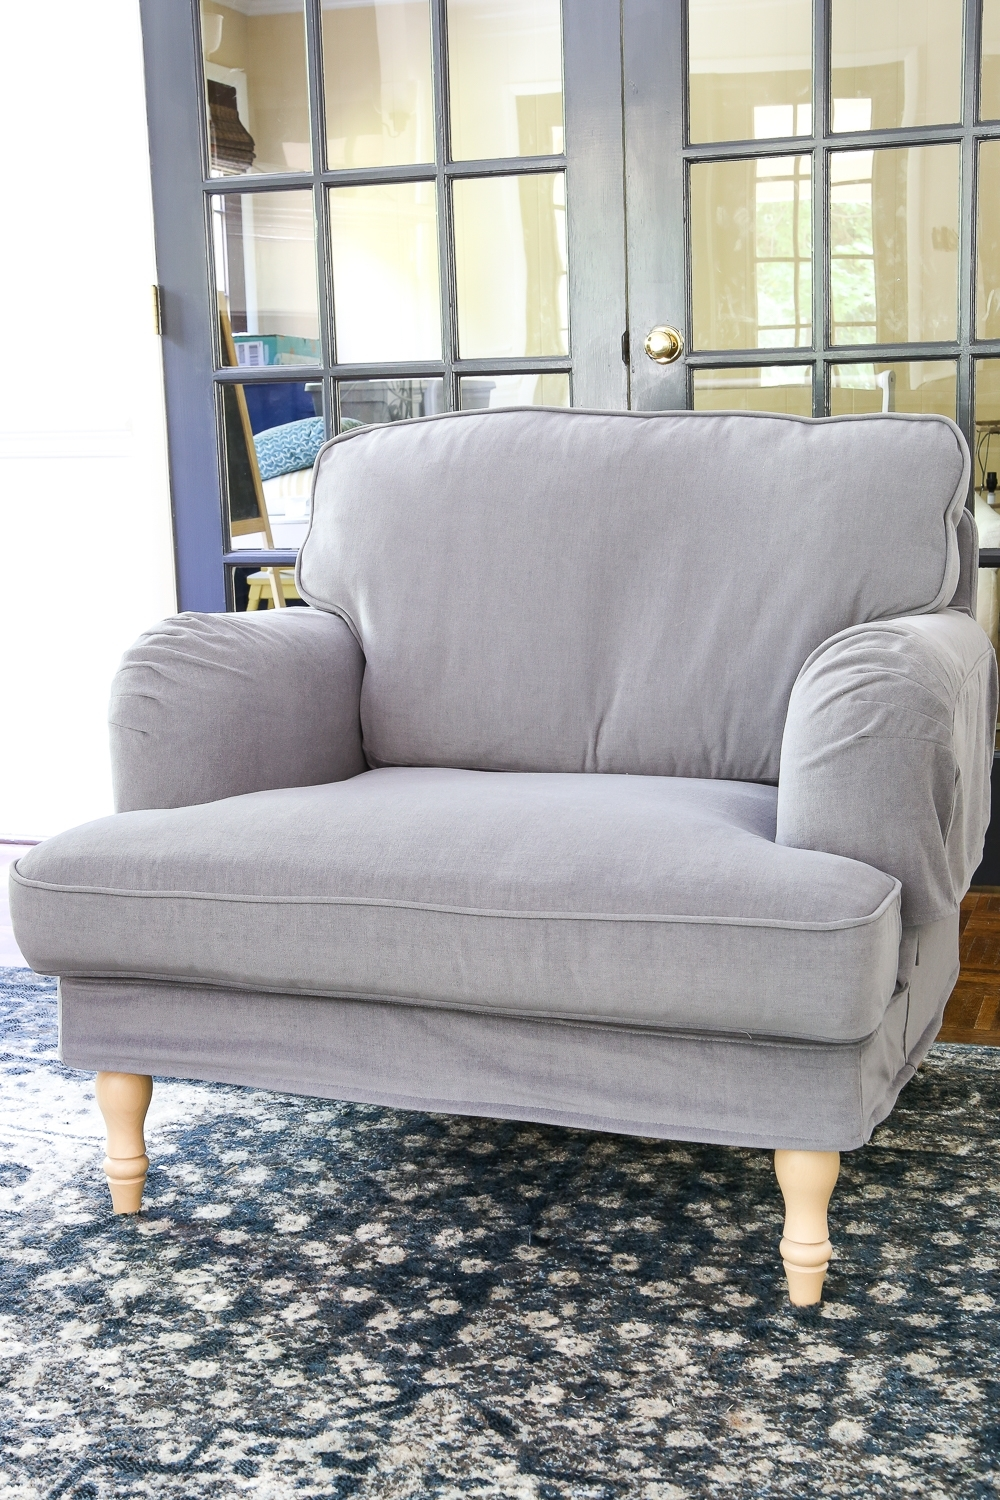 Ikea's New Sofa And Chairs And How To Keep Them Clean – Bless'er House In Fashionable Sofa With Chairs (View 18 of 20)